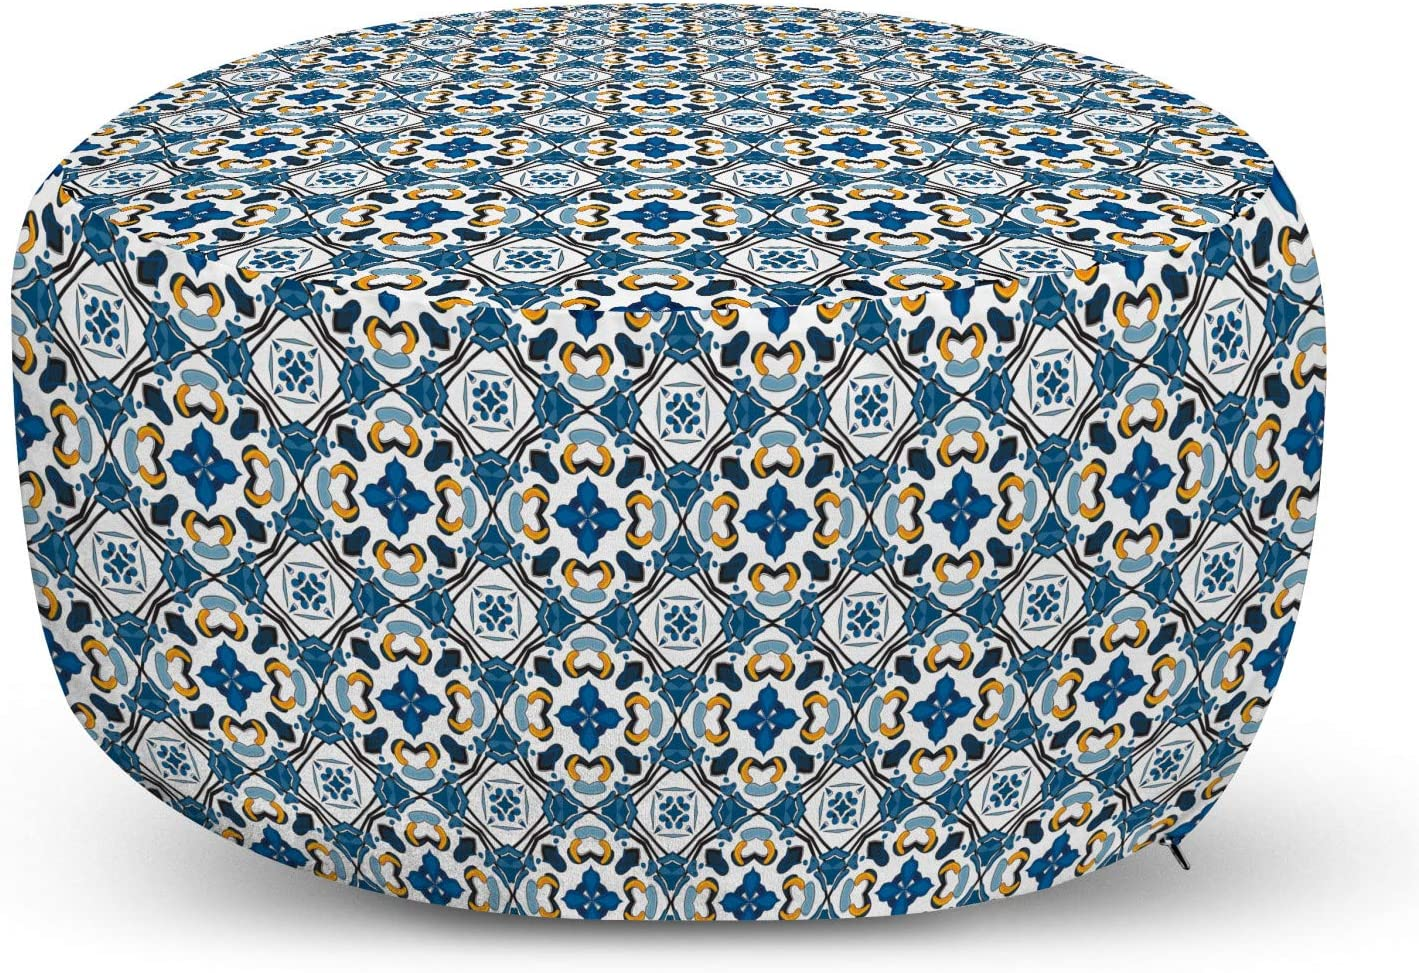 Ambesonne European Ottoman Pouf, Portuguese Ceramic Classic Tilework Building Artisan European Inspired Image Print, Decorative Soft Foot Rest with Removable Cover Living Room and Bedroom, Blue